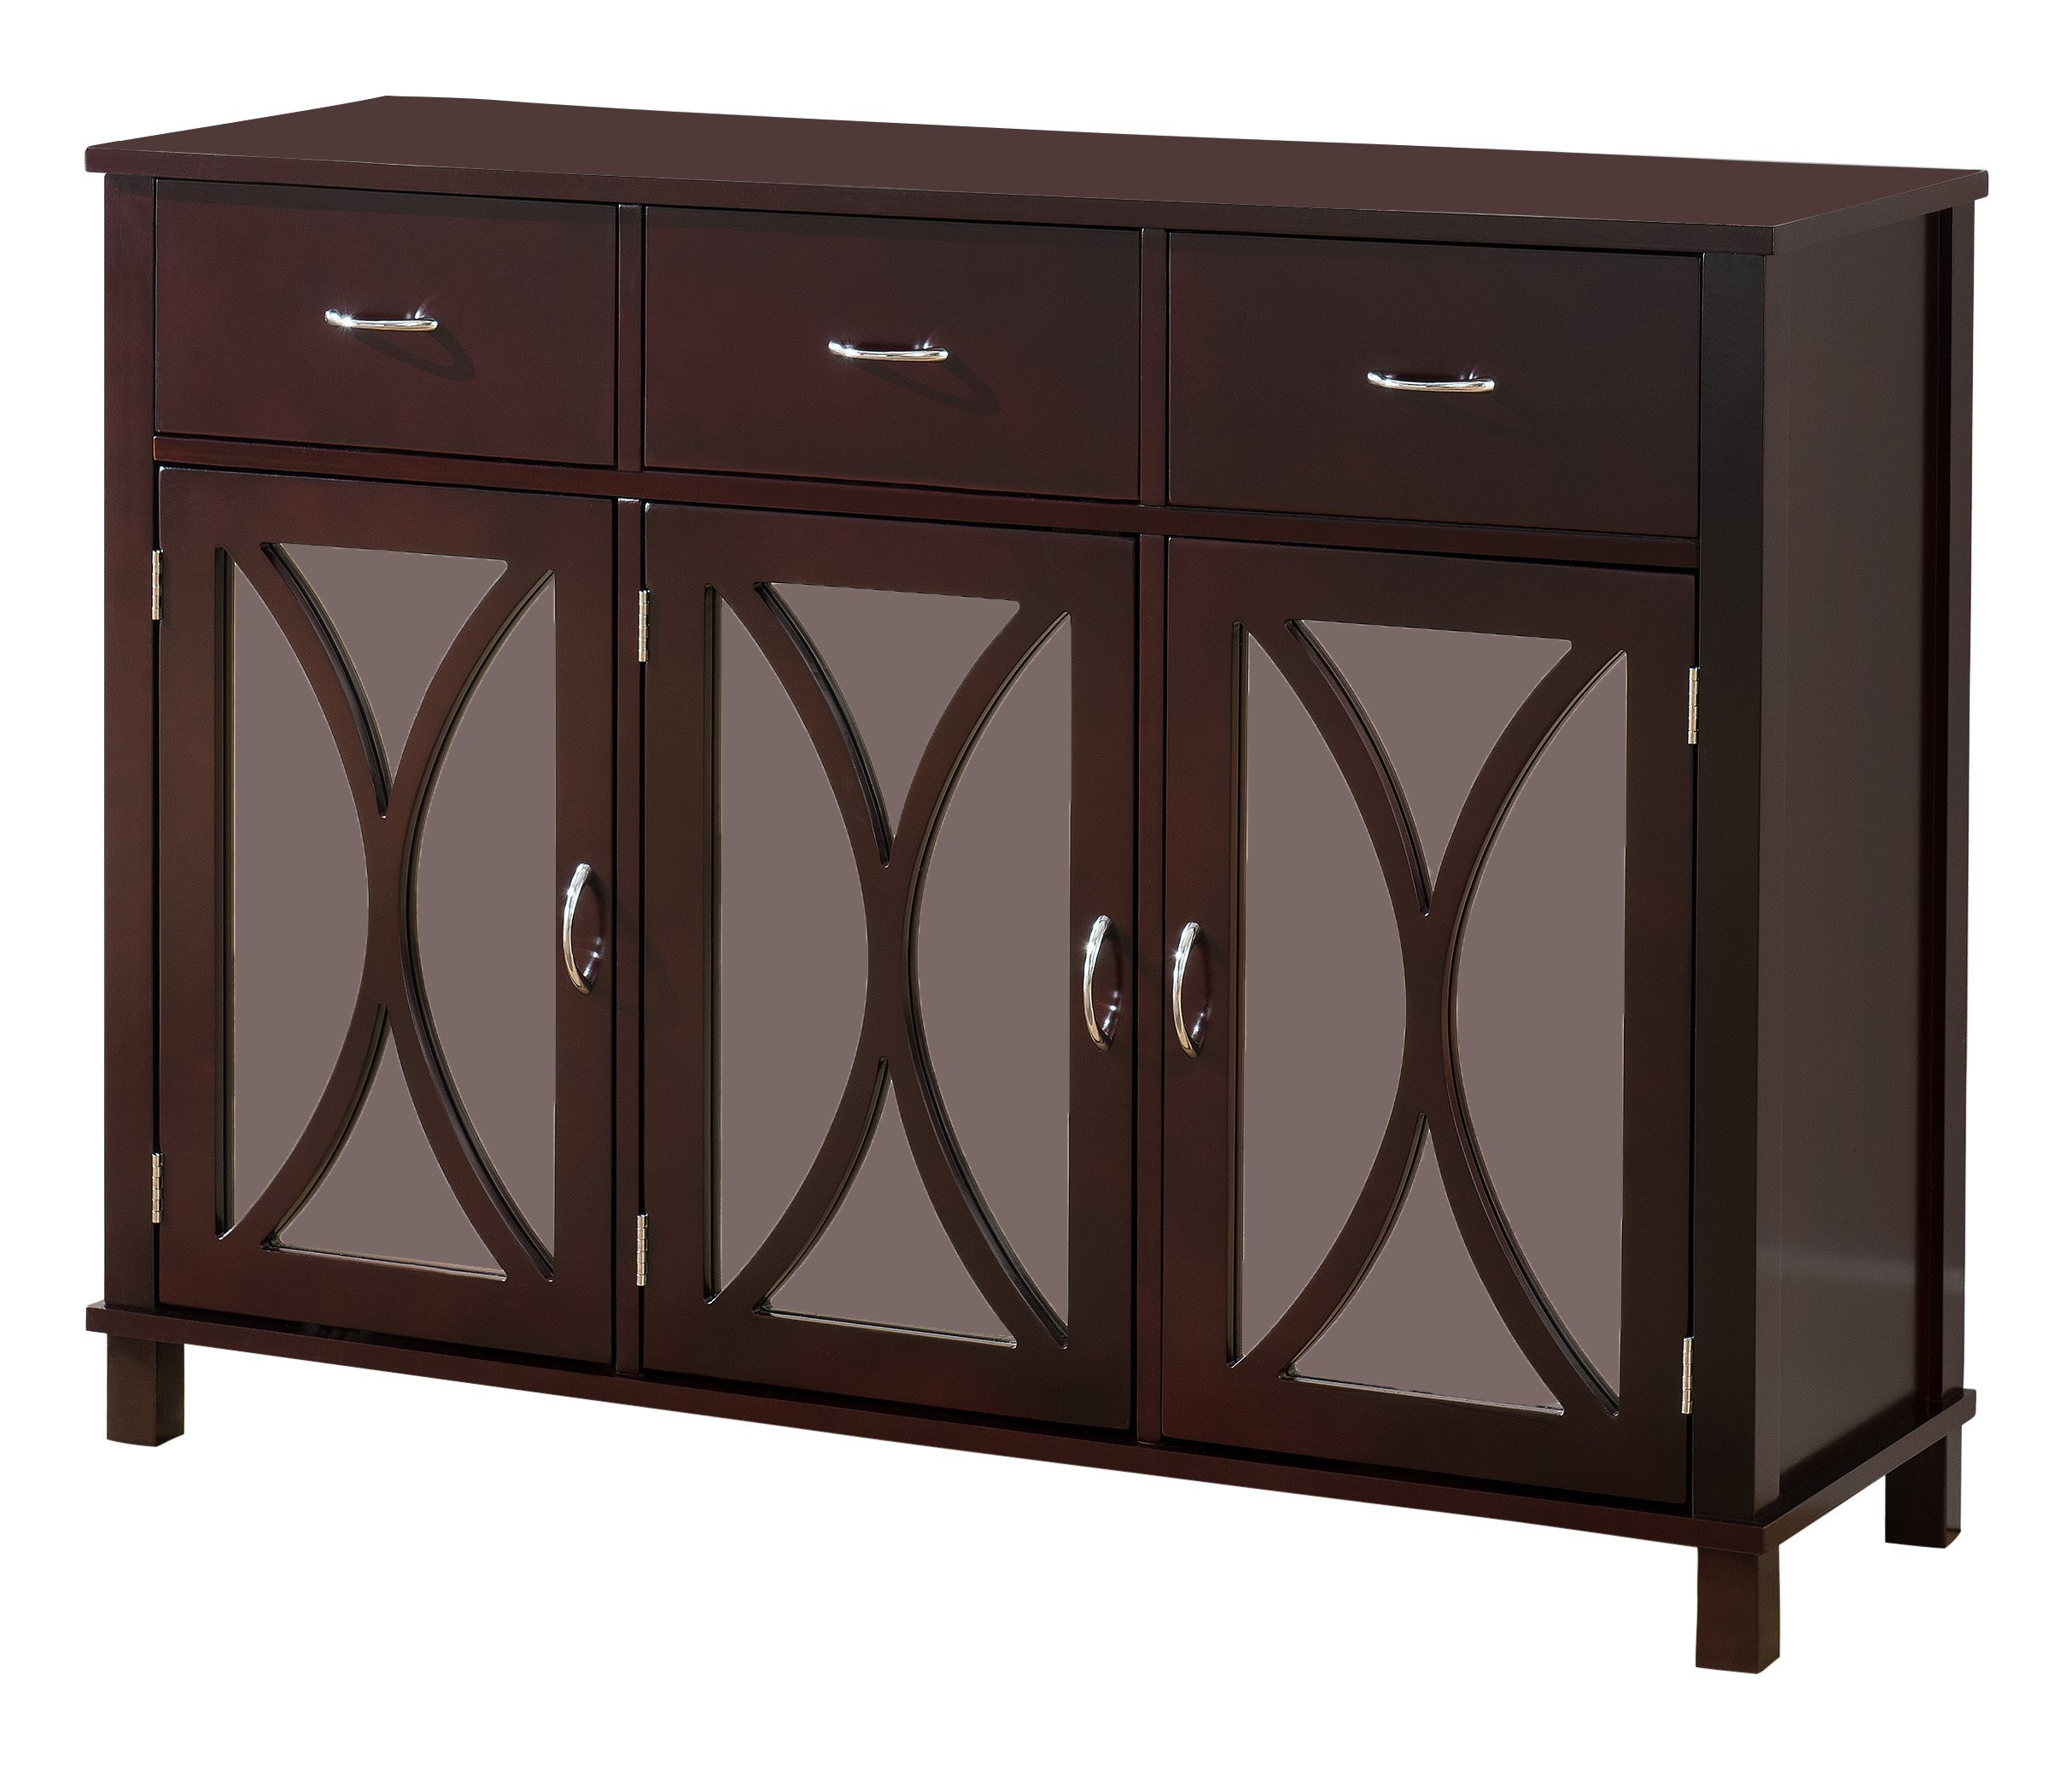 Kings Brand Rutheron Buffet Server Cabinet/Console Table, Mirrored Doors, Espresso by Kings Brand Furniture (Image #4)